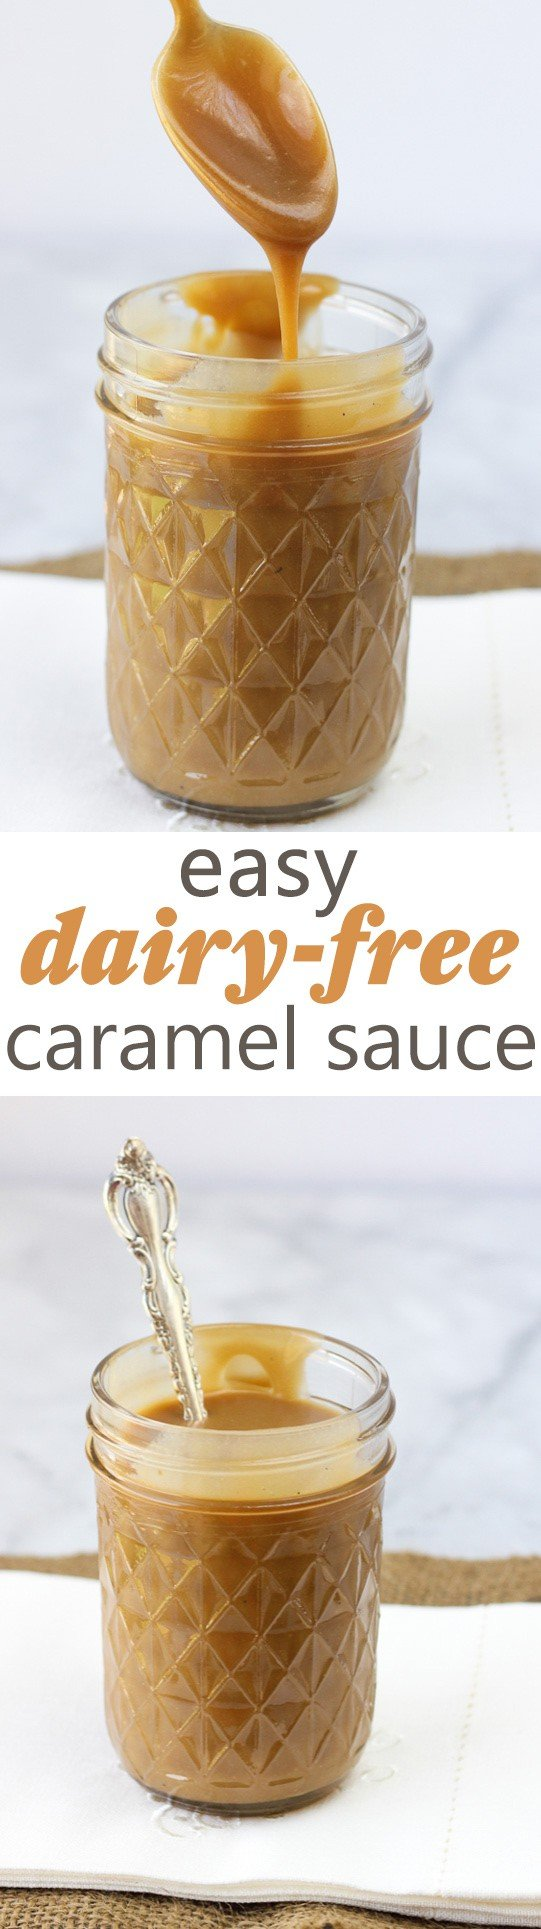 Easy, Dairy-Free Caramel Sauce! Refined-Sugar-Free, Paleo and so easy to make!